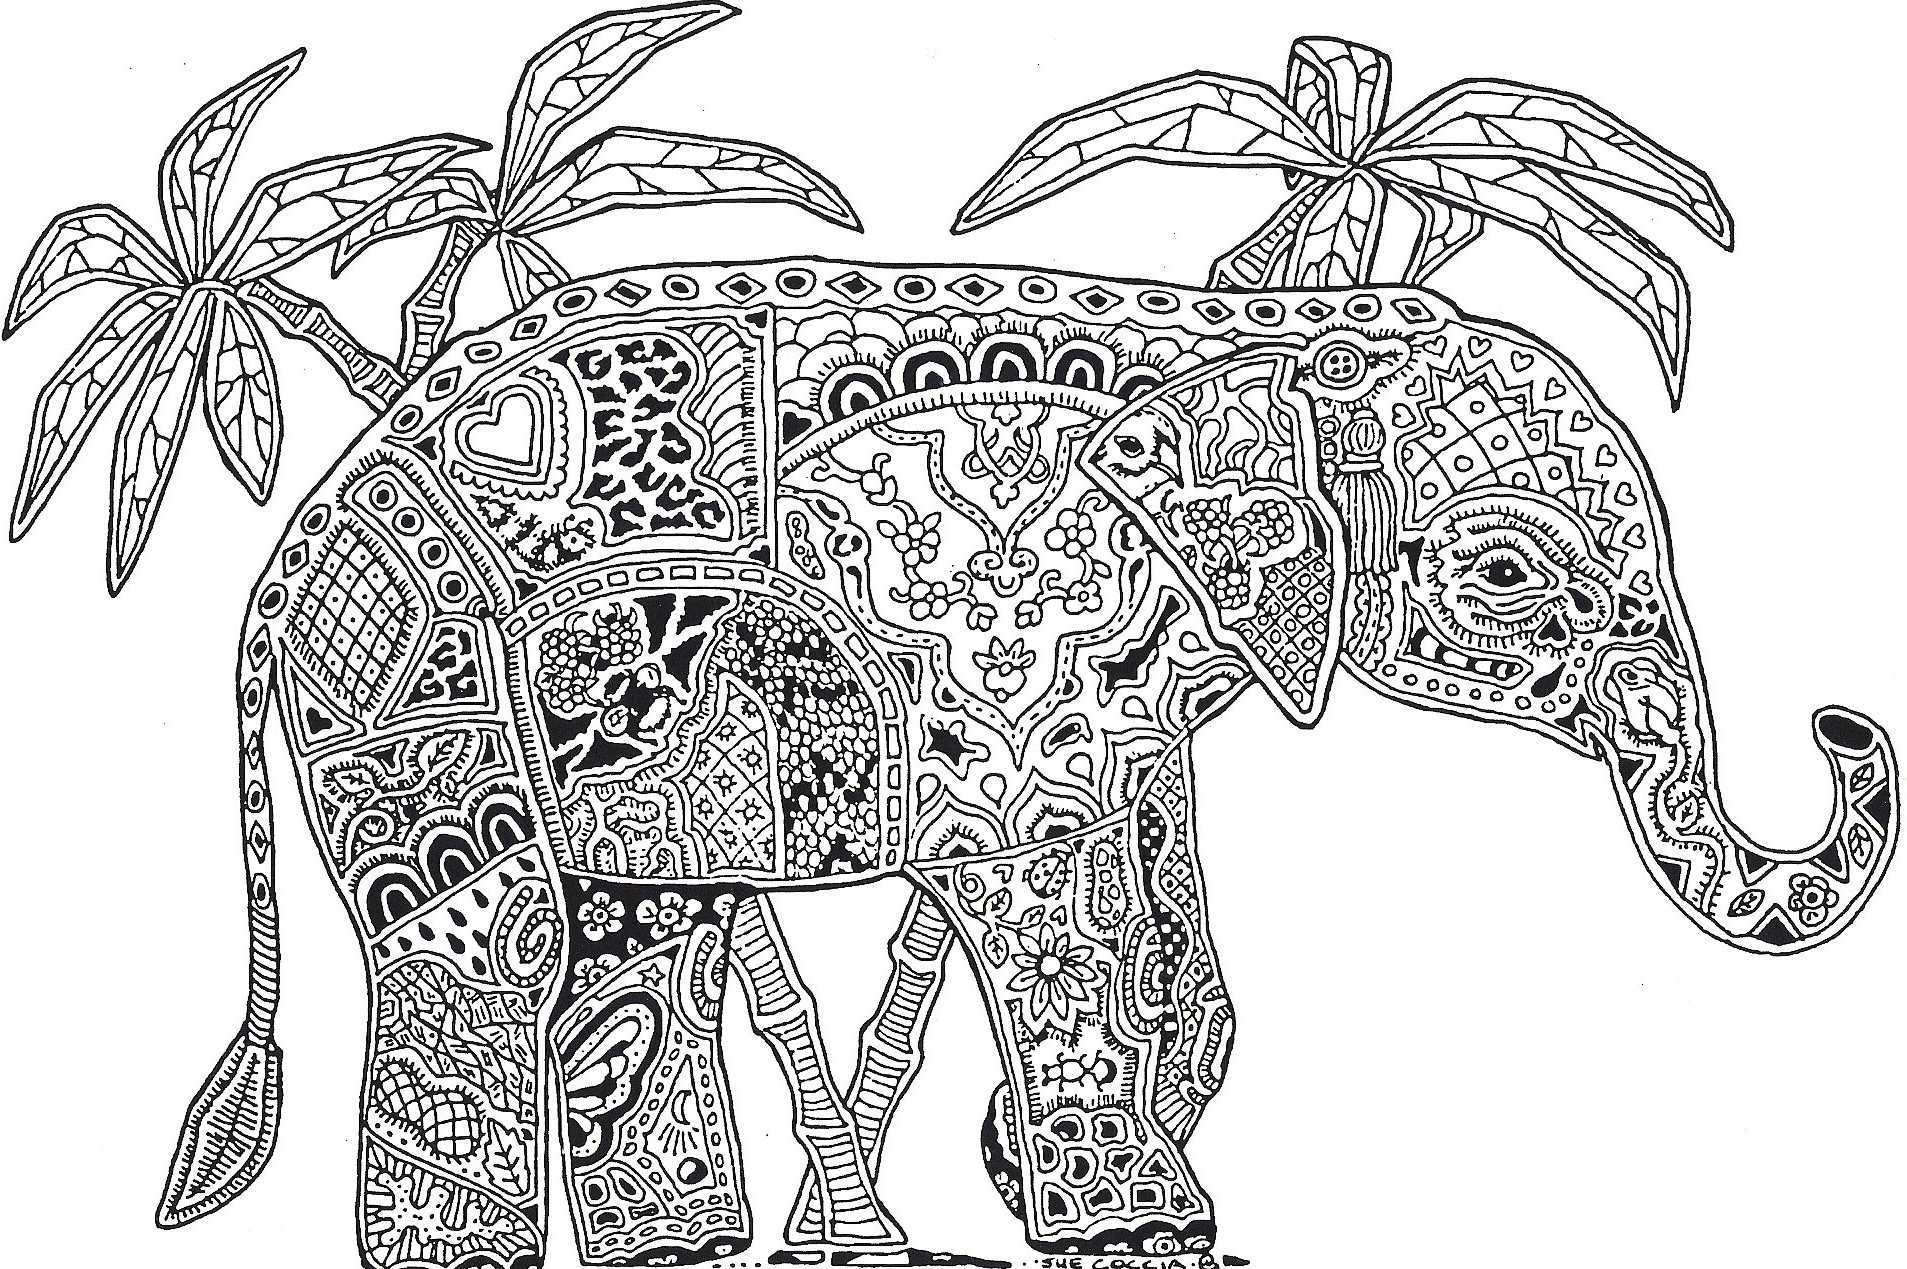 12 paisley design coloring pages animals images paisley pattern